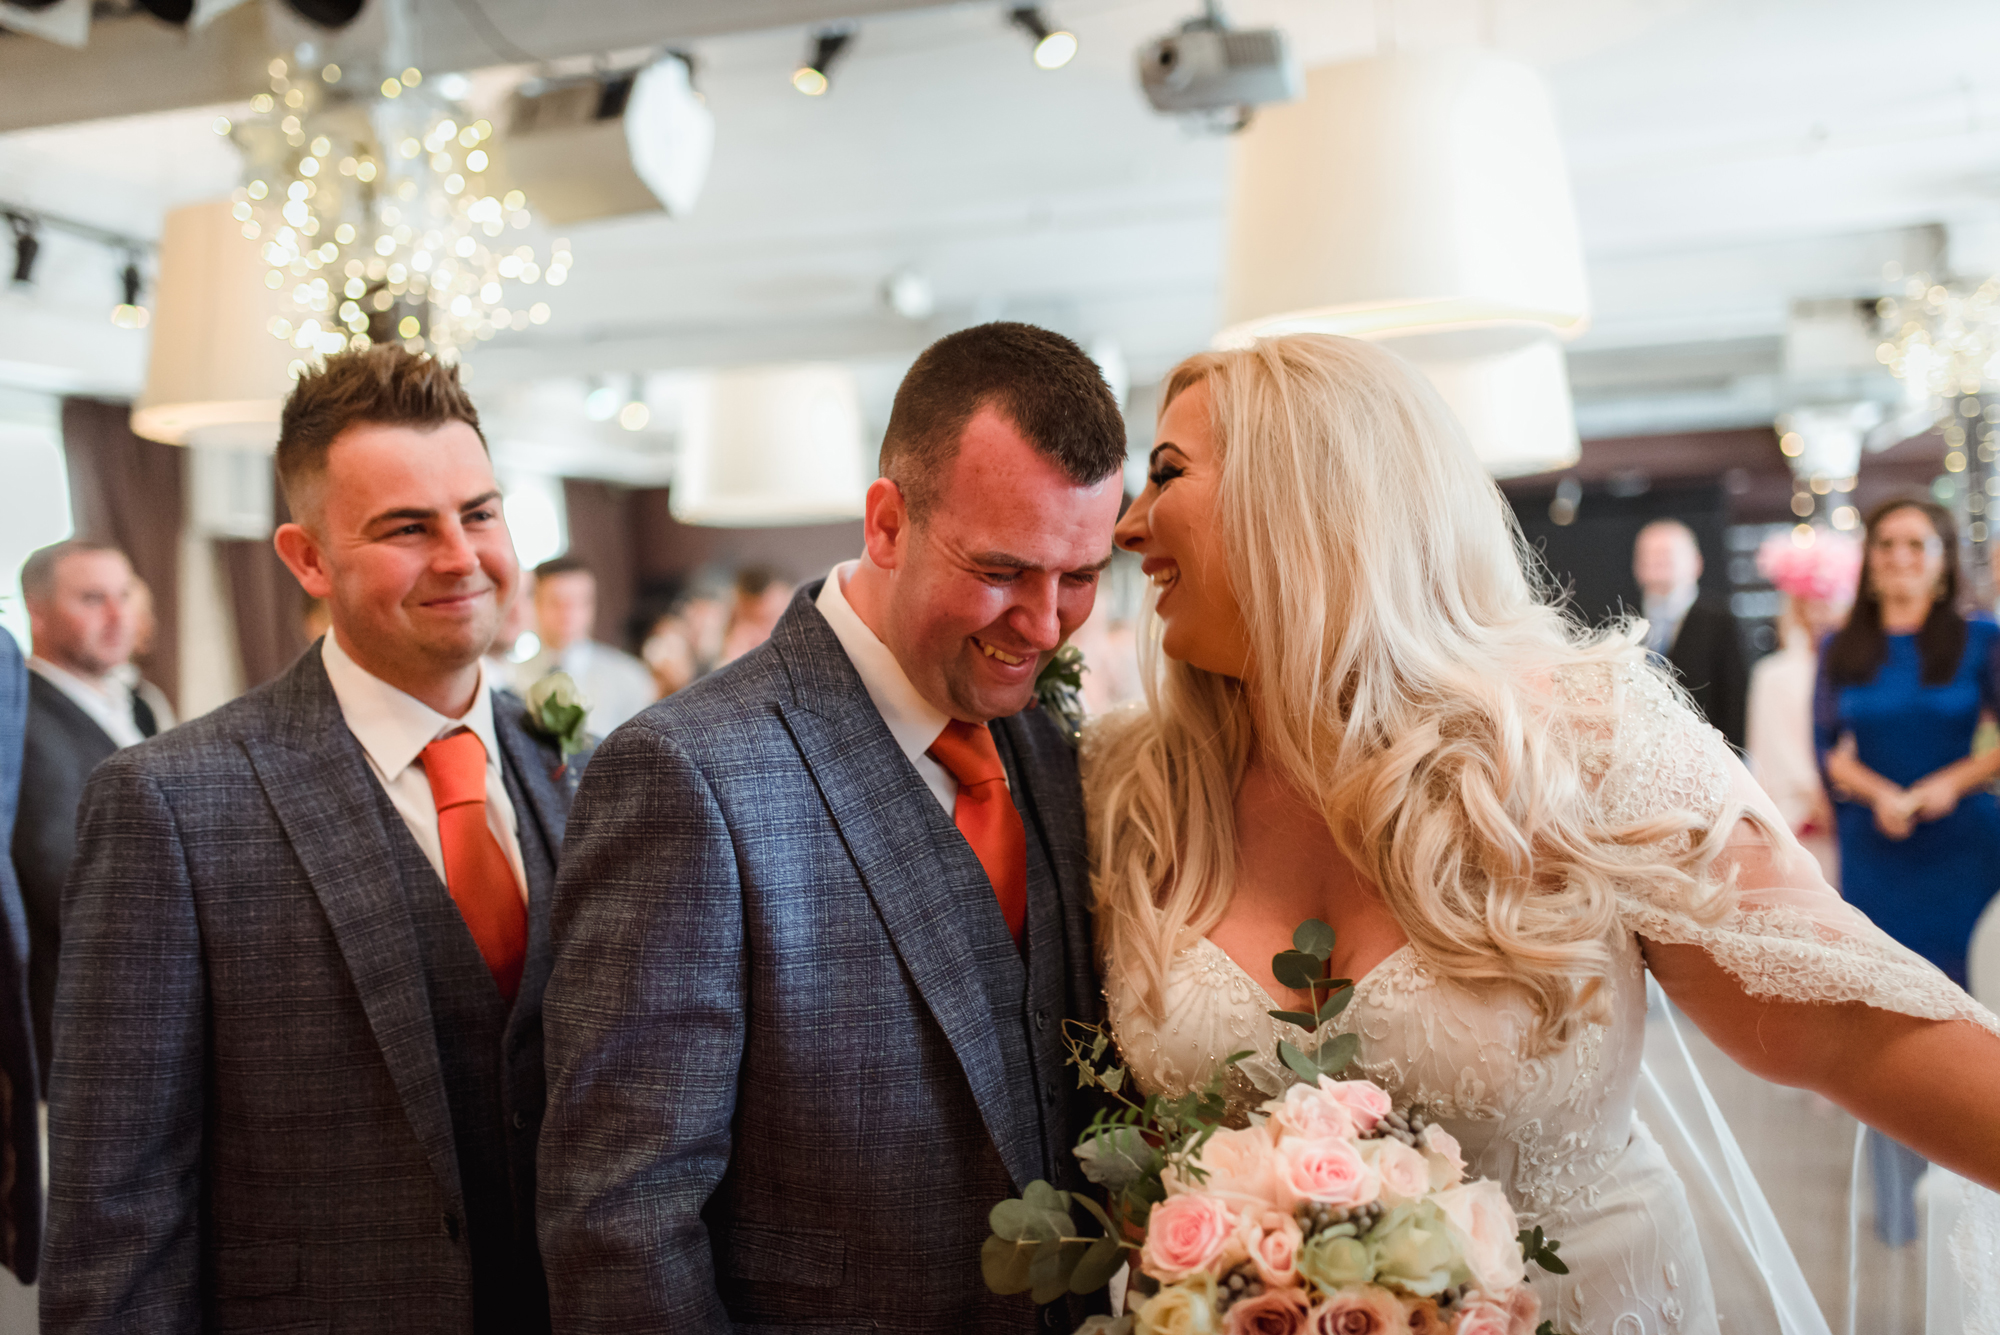 natural-emotion-wedding-photography-glasgow.jpg